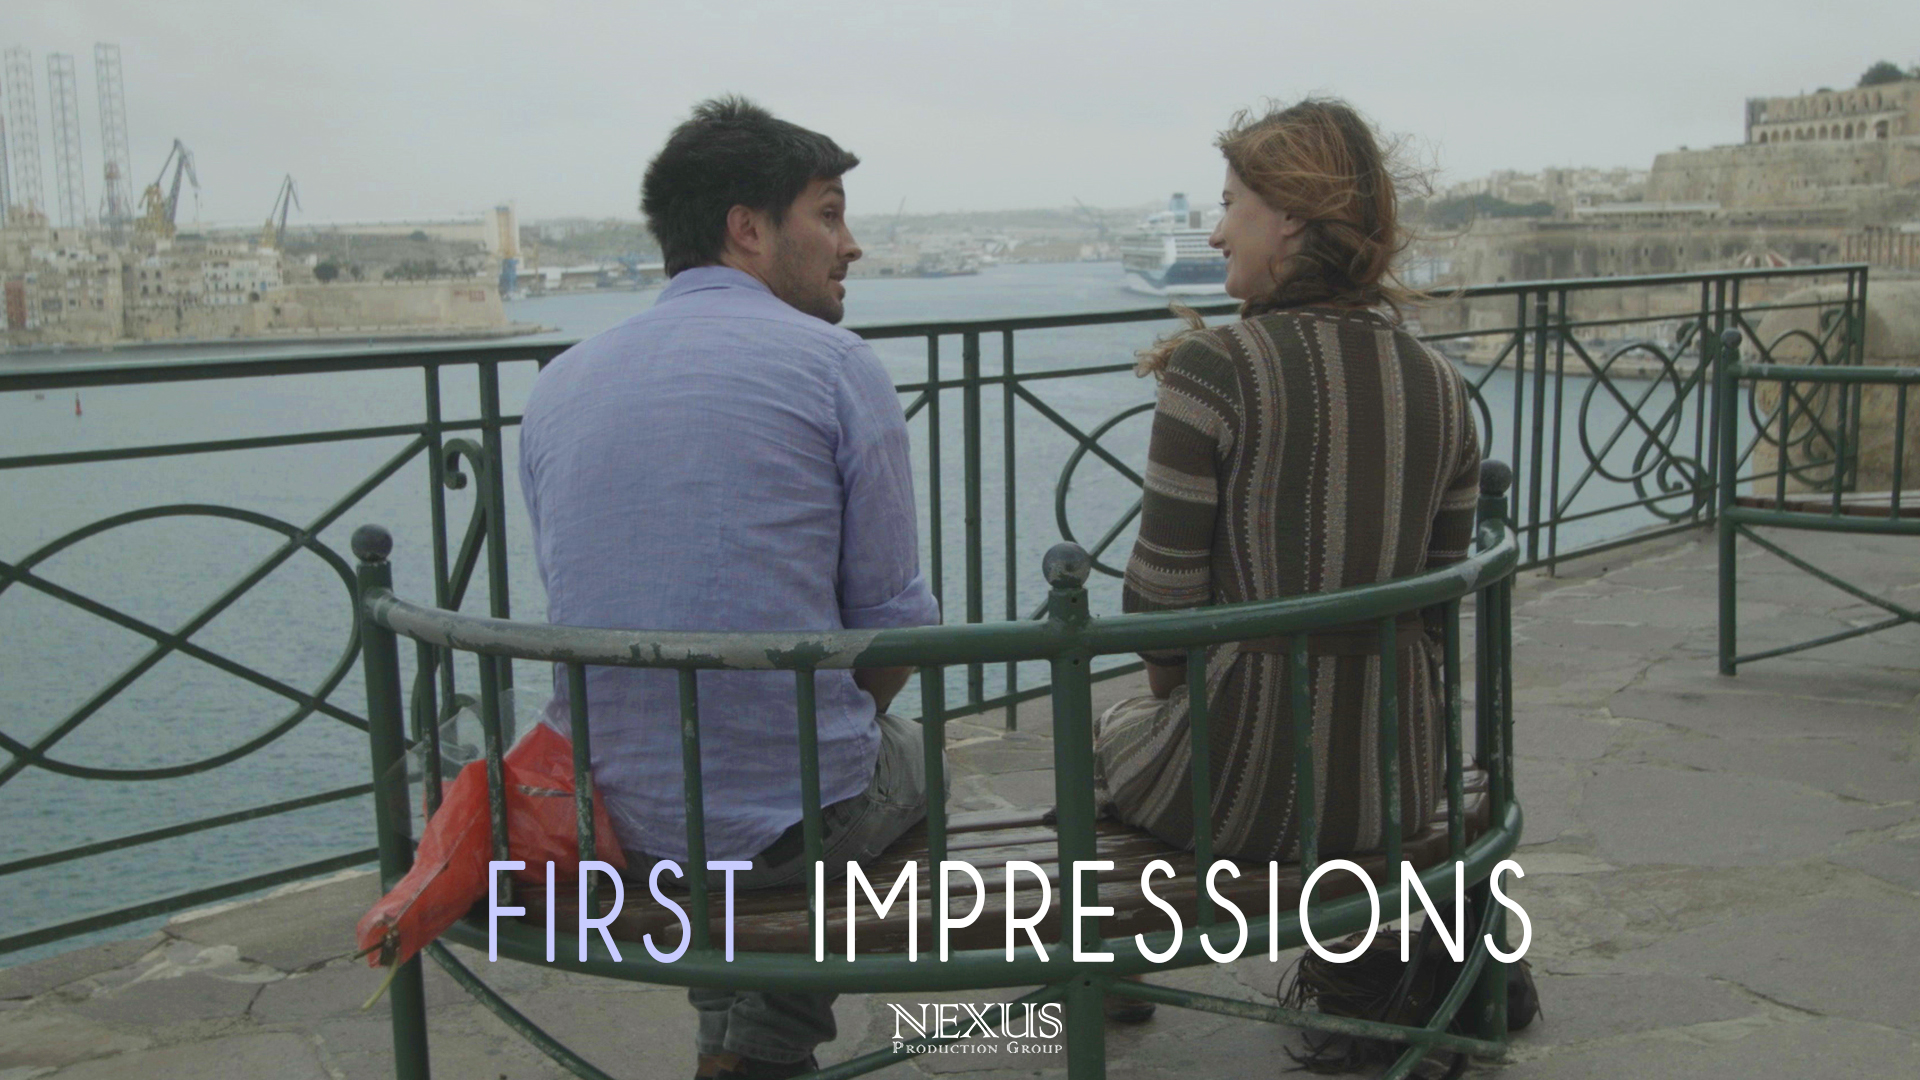 First Impressions Poster2.jpg